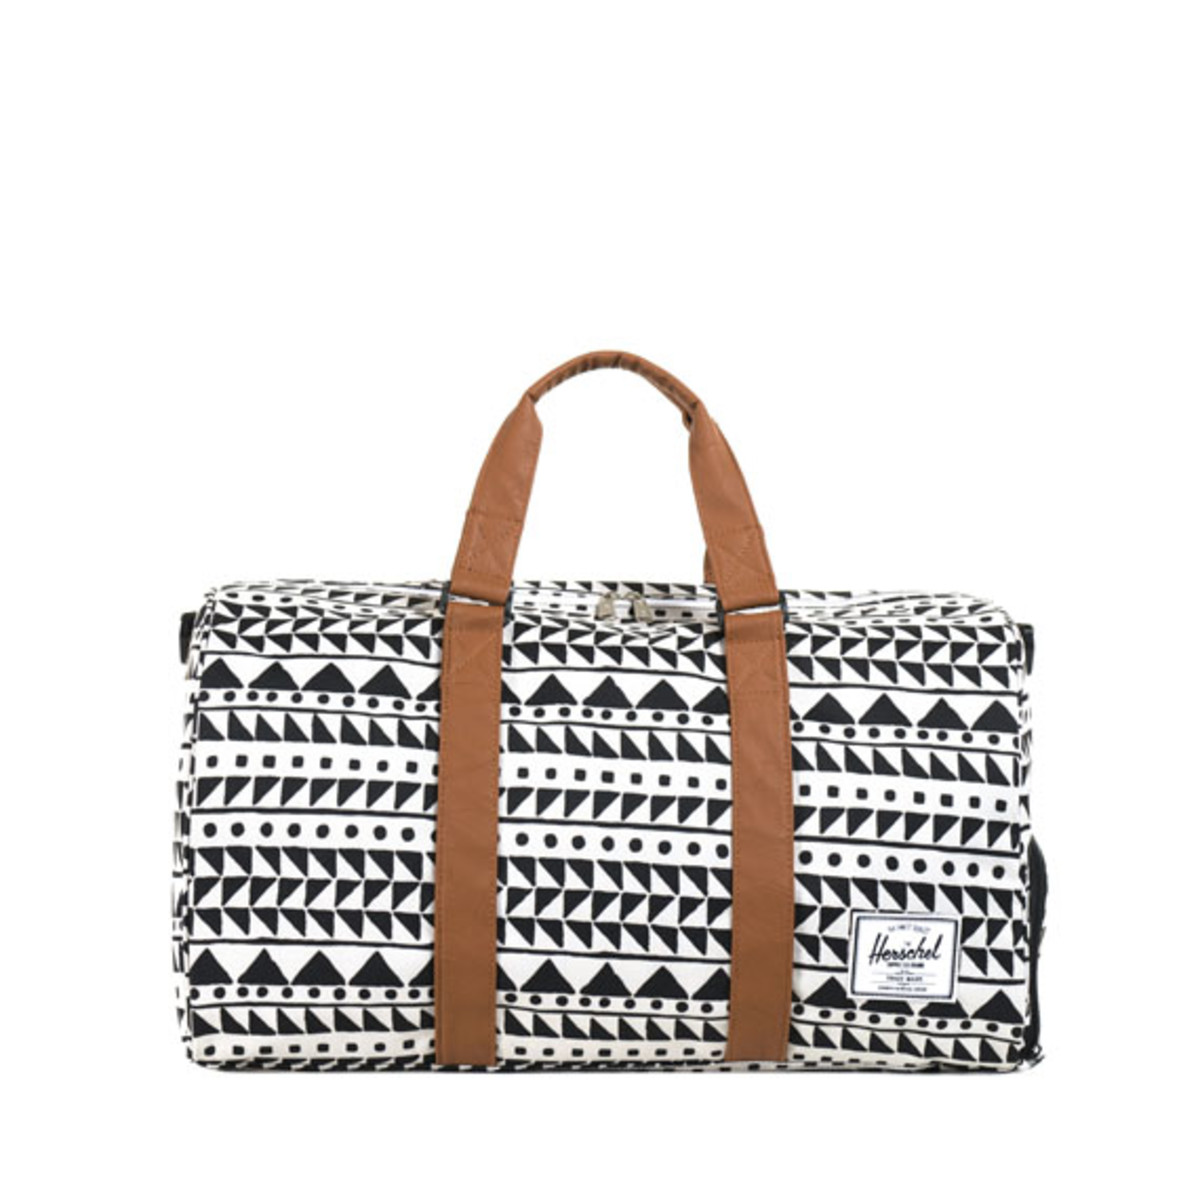 herschel-supply-co-fall-2013-classic-prints-07